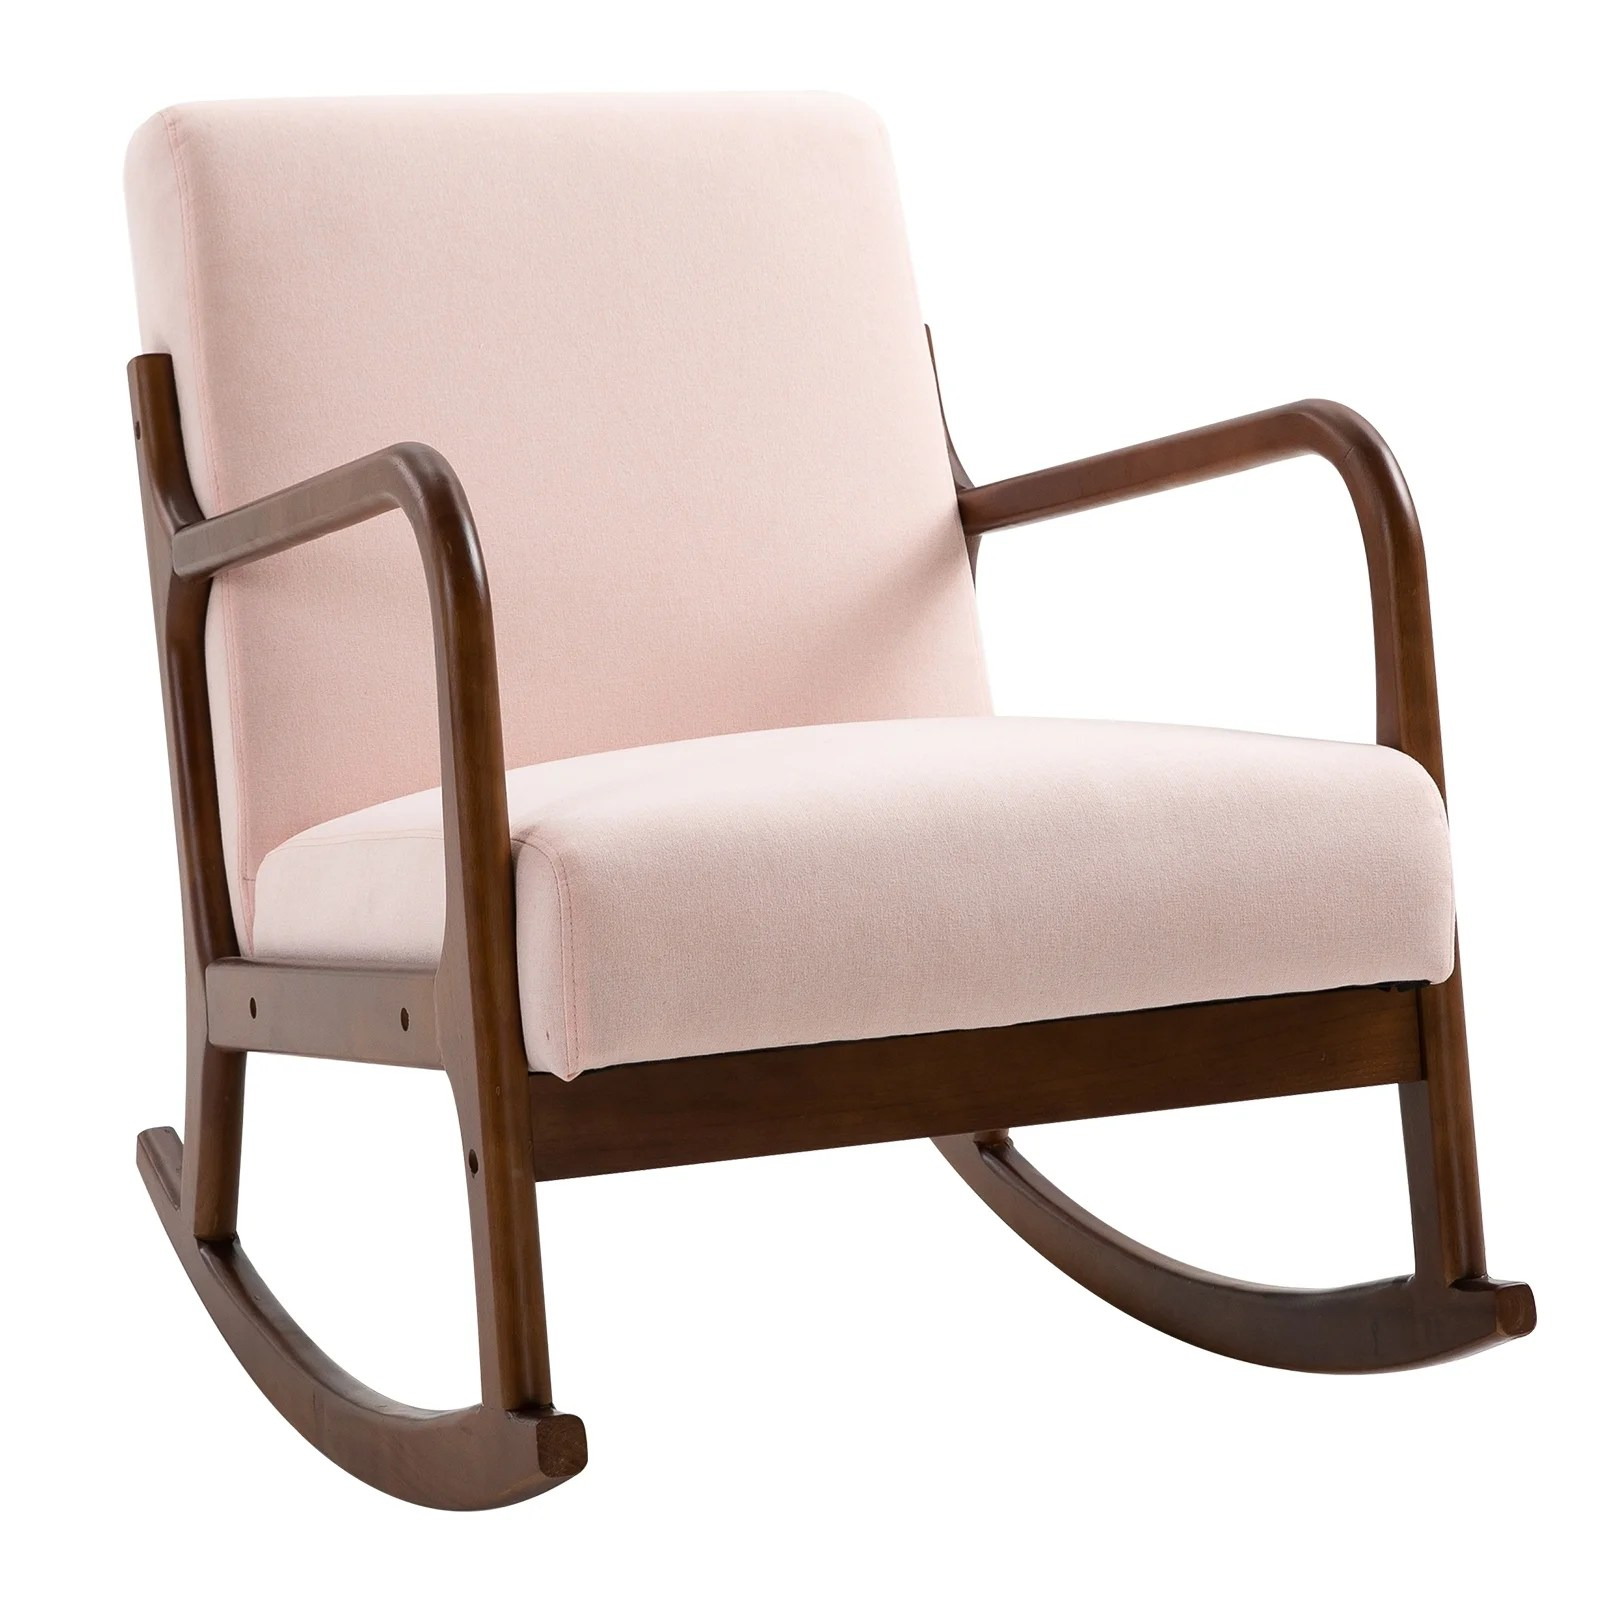 Shop Homcom Rocking Chair With Curved Wood Base Fabric Rocker With Padded Seat Home Furniture Bedroom Living Room Relax On Sale Overstock 31686663 Pink